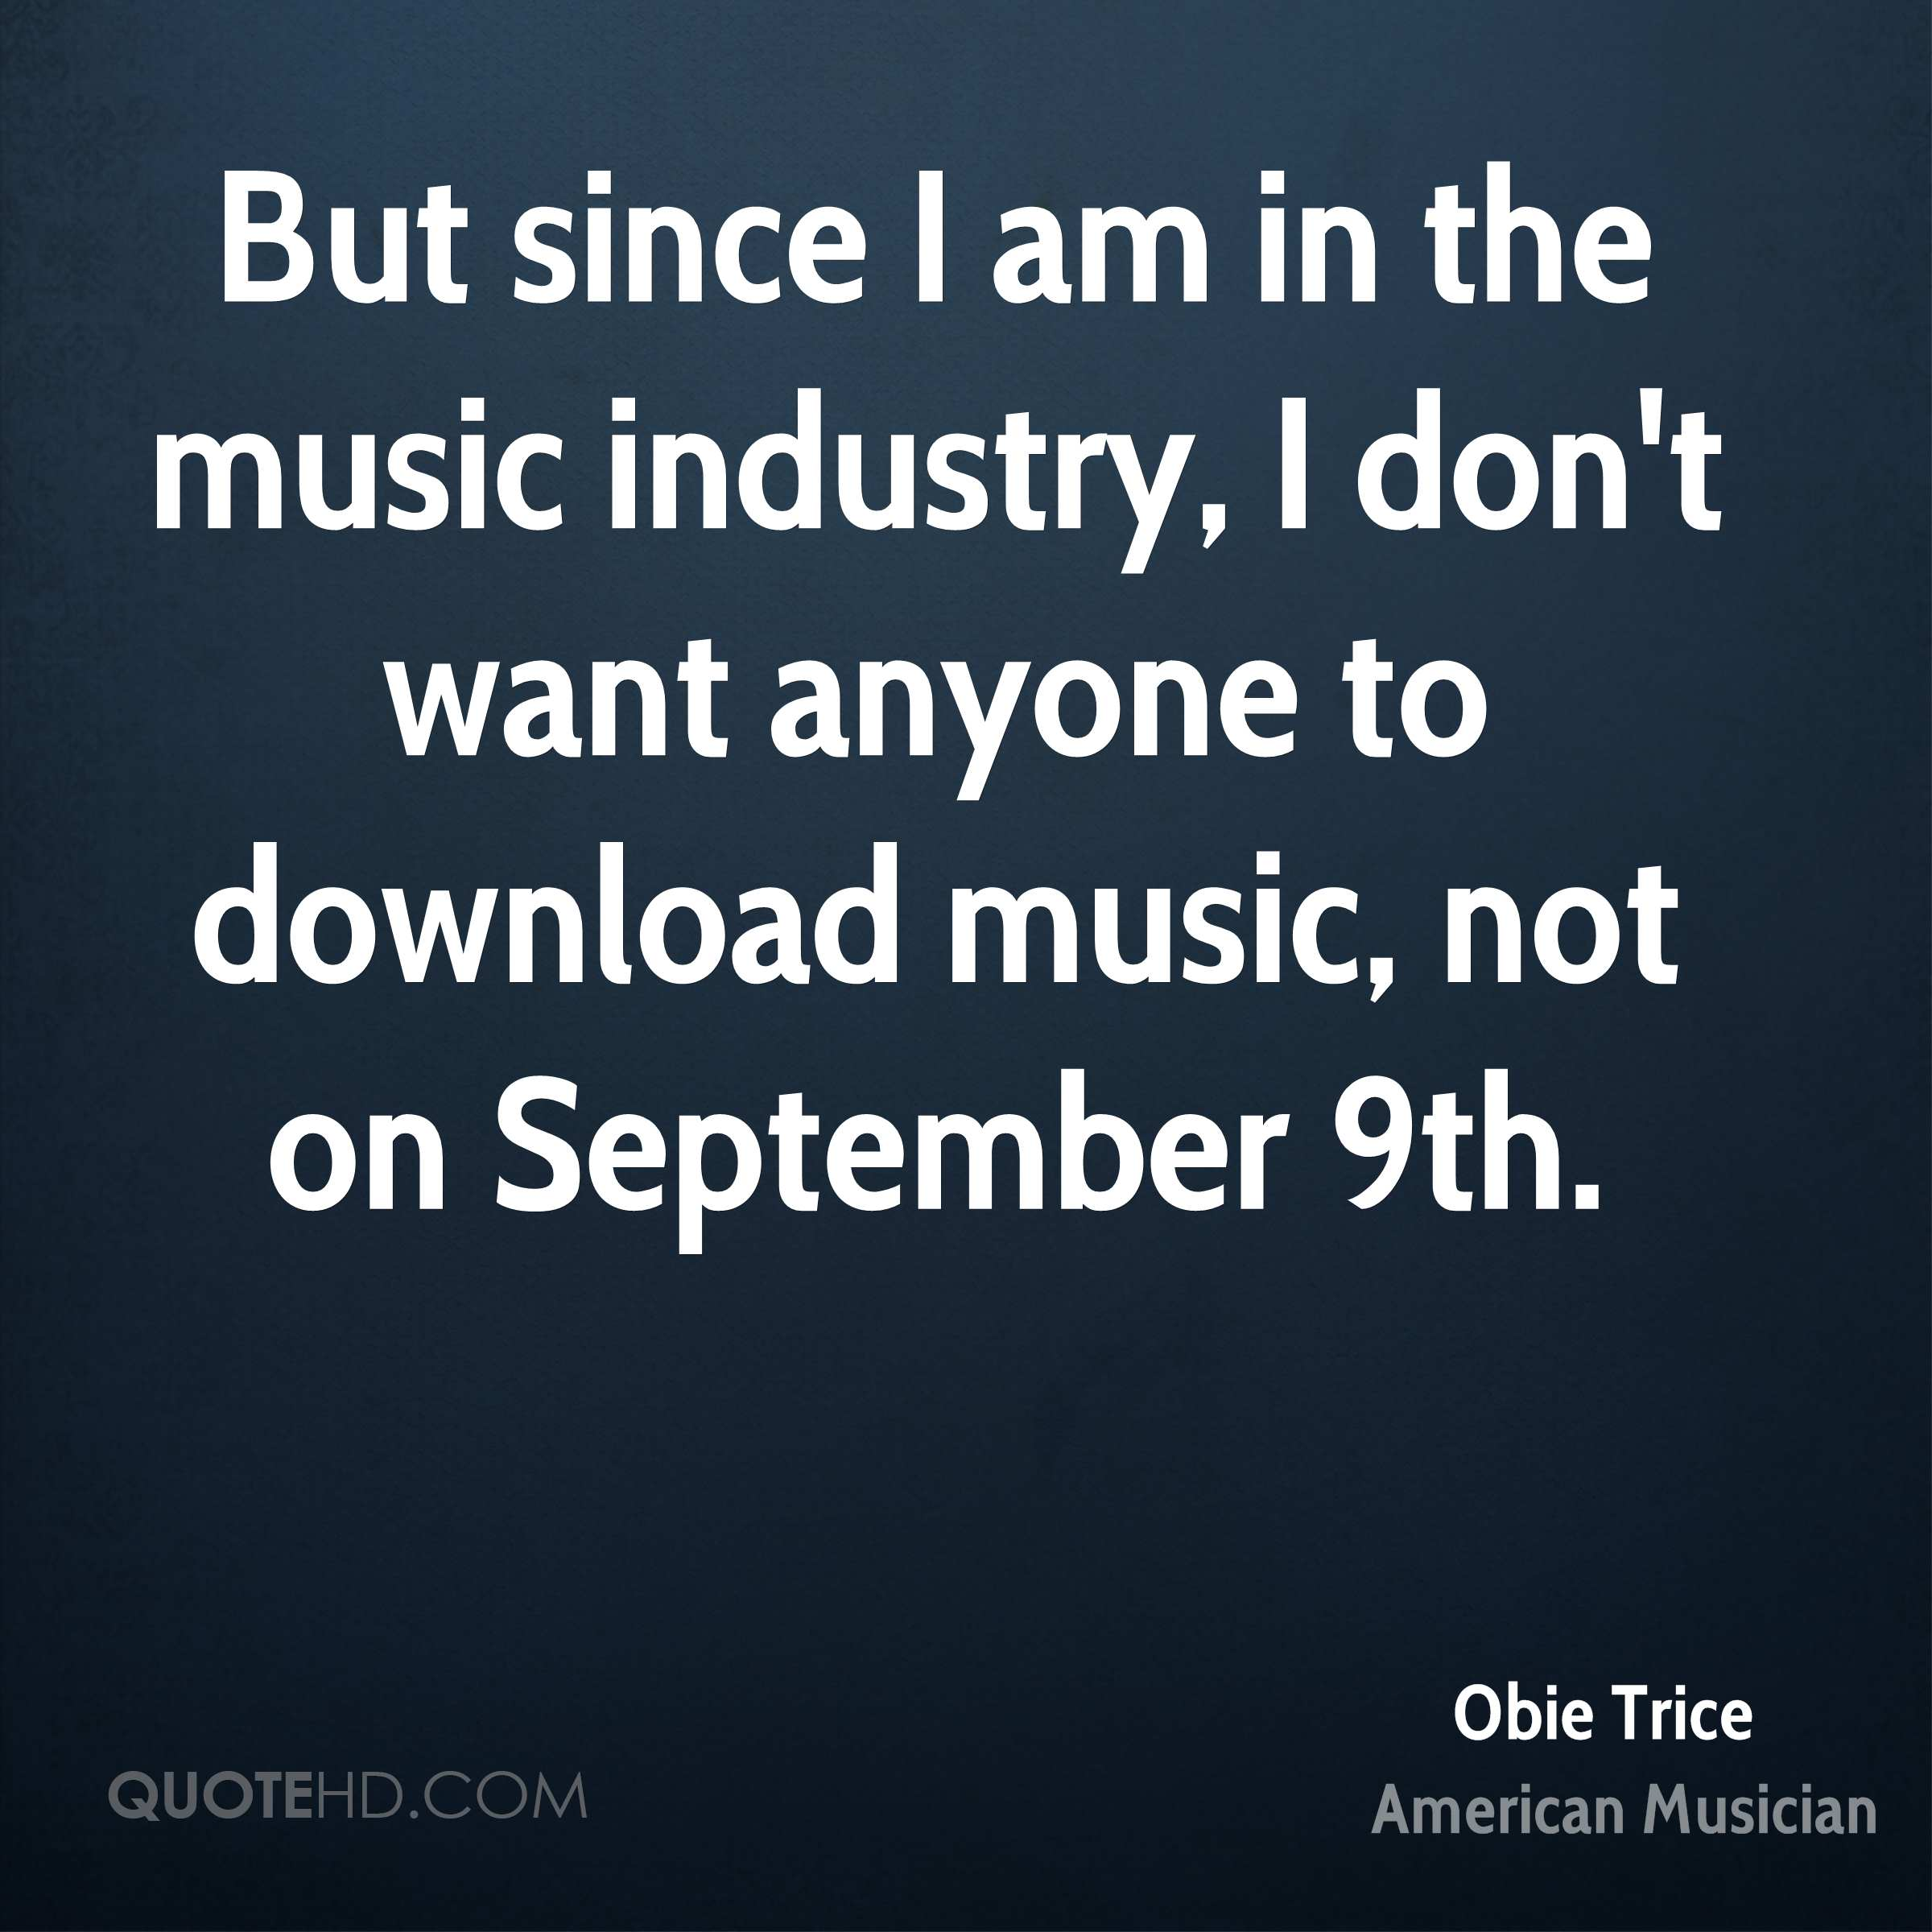 But since I am in the music industry, I don't want anyone to download music, not on September 9th.